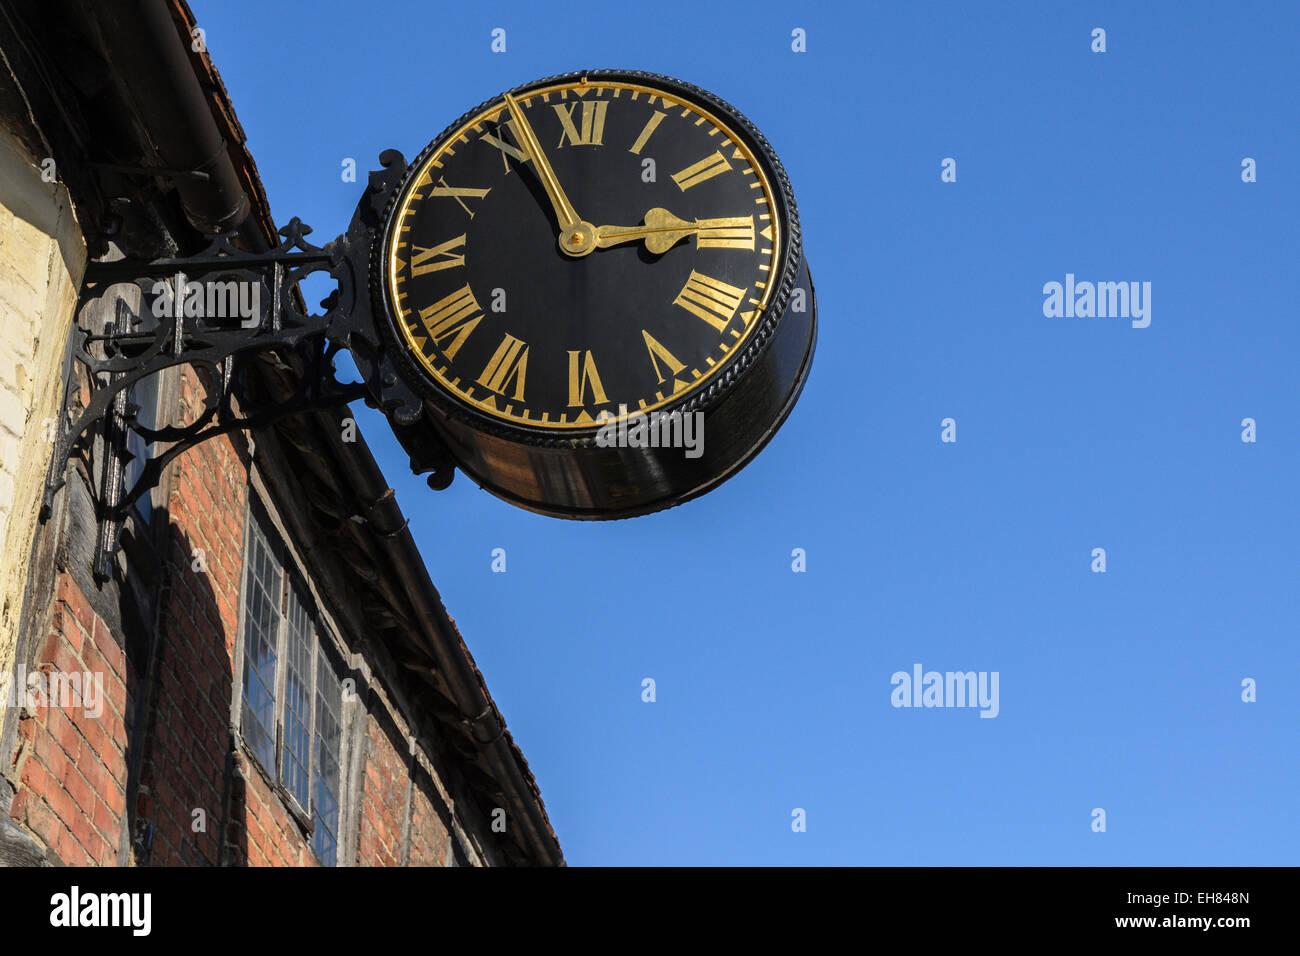 The Clock on West Wycombe High Street. - Stock Image